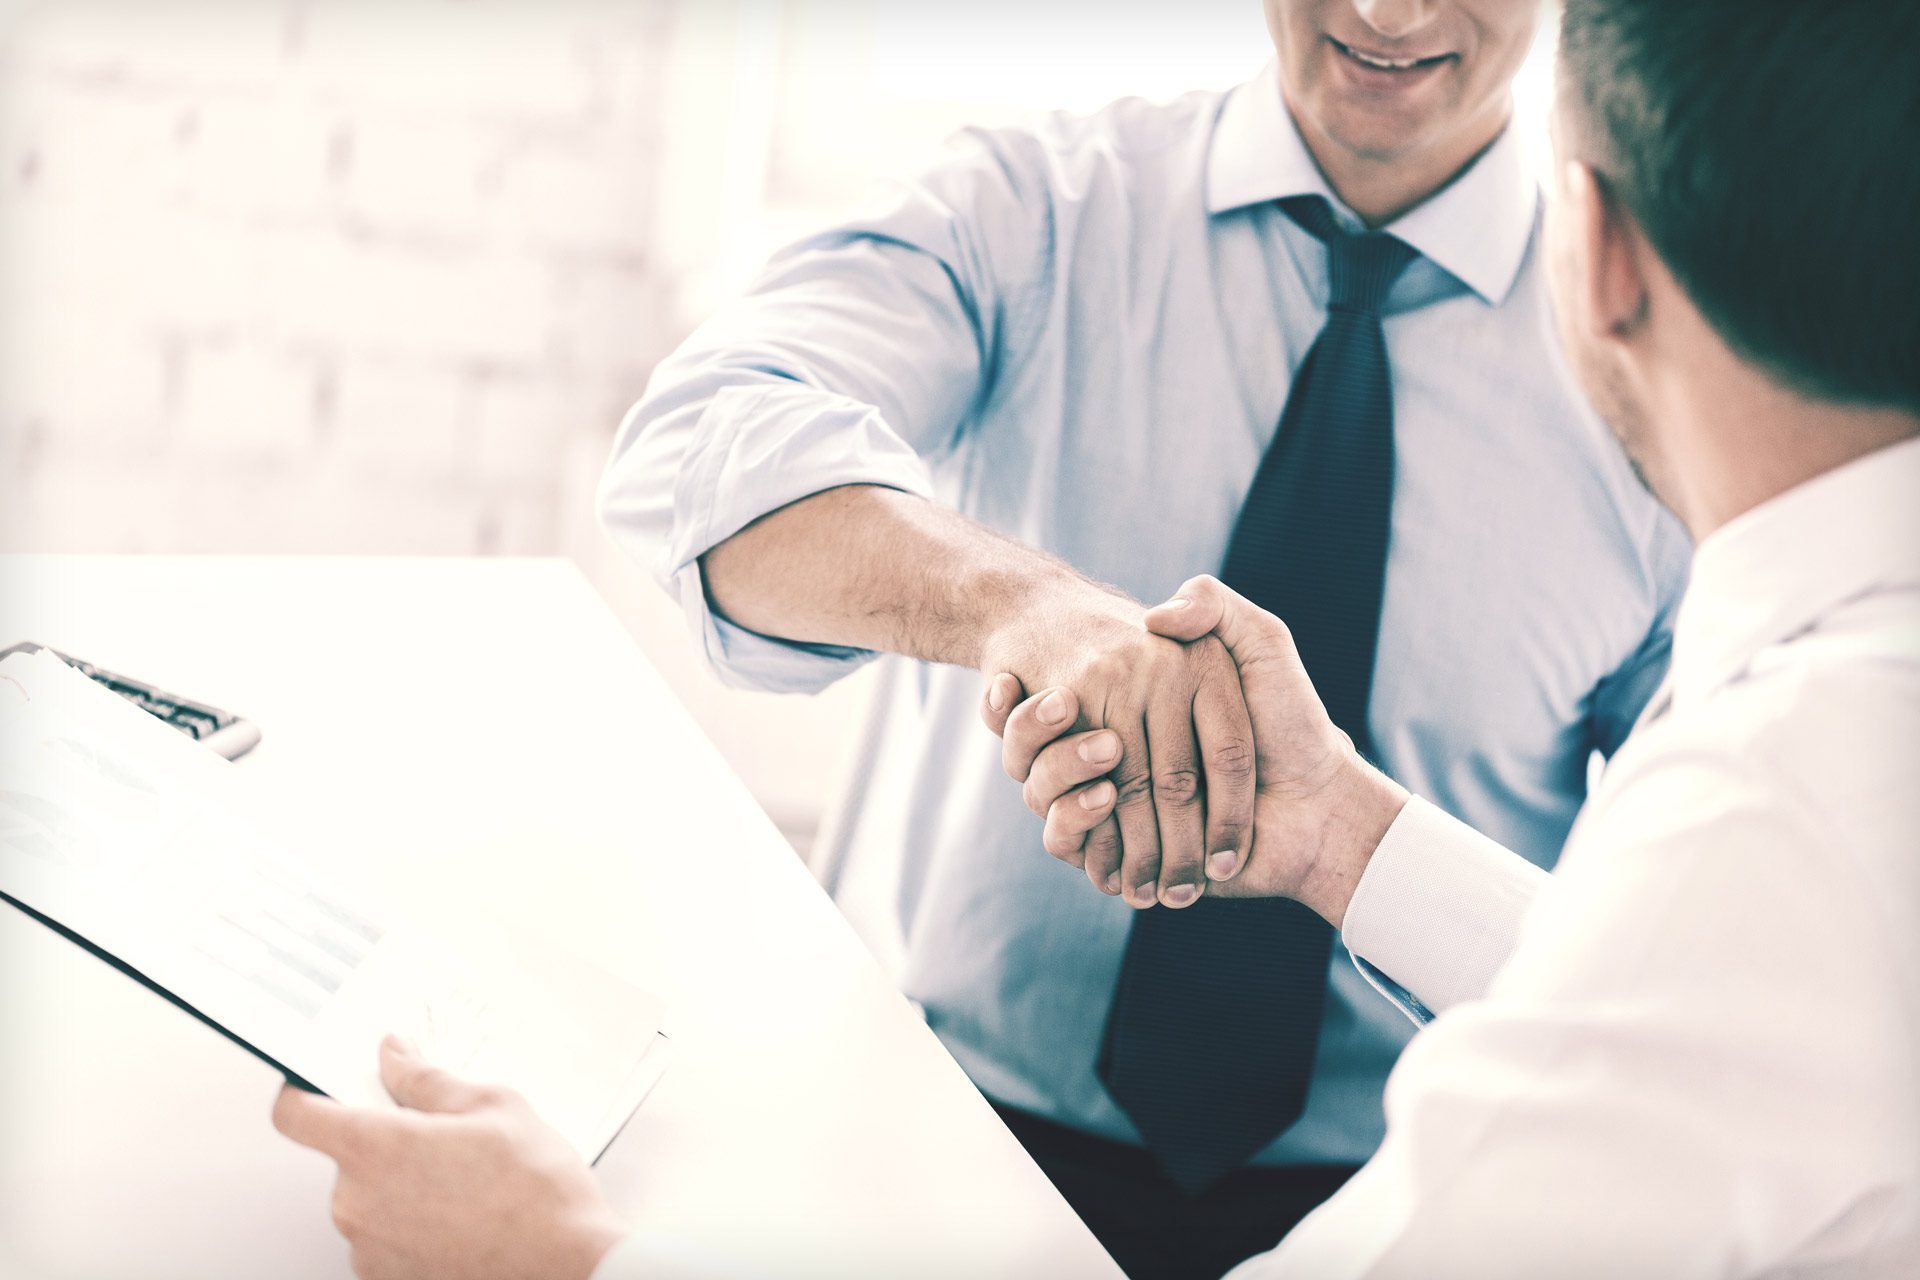 happy handshake in greeting or business deal